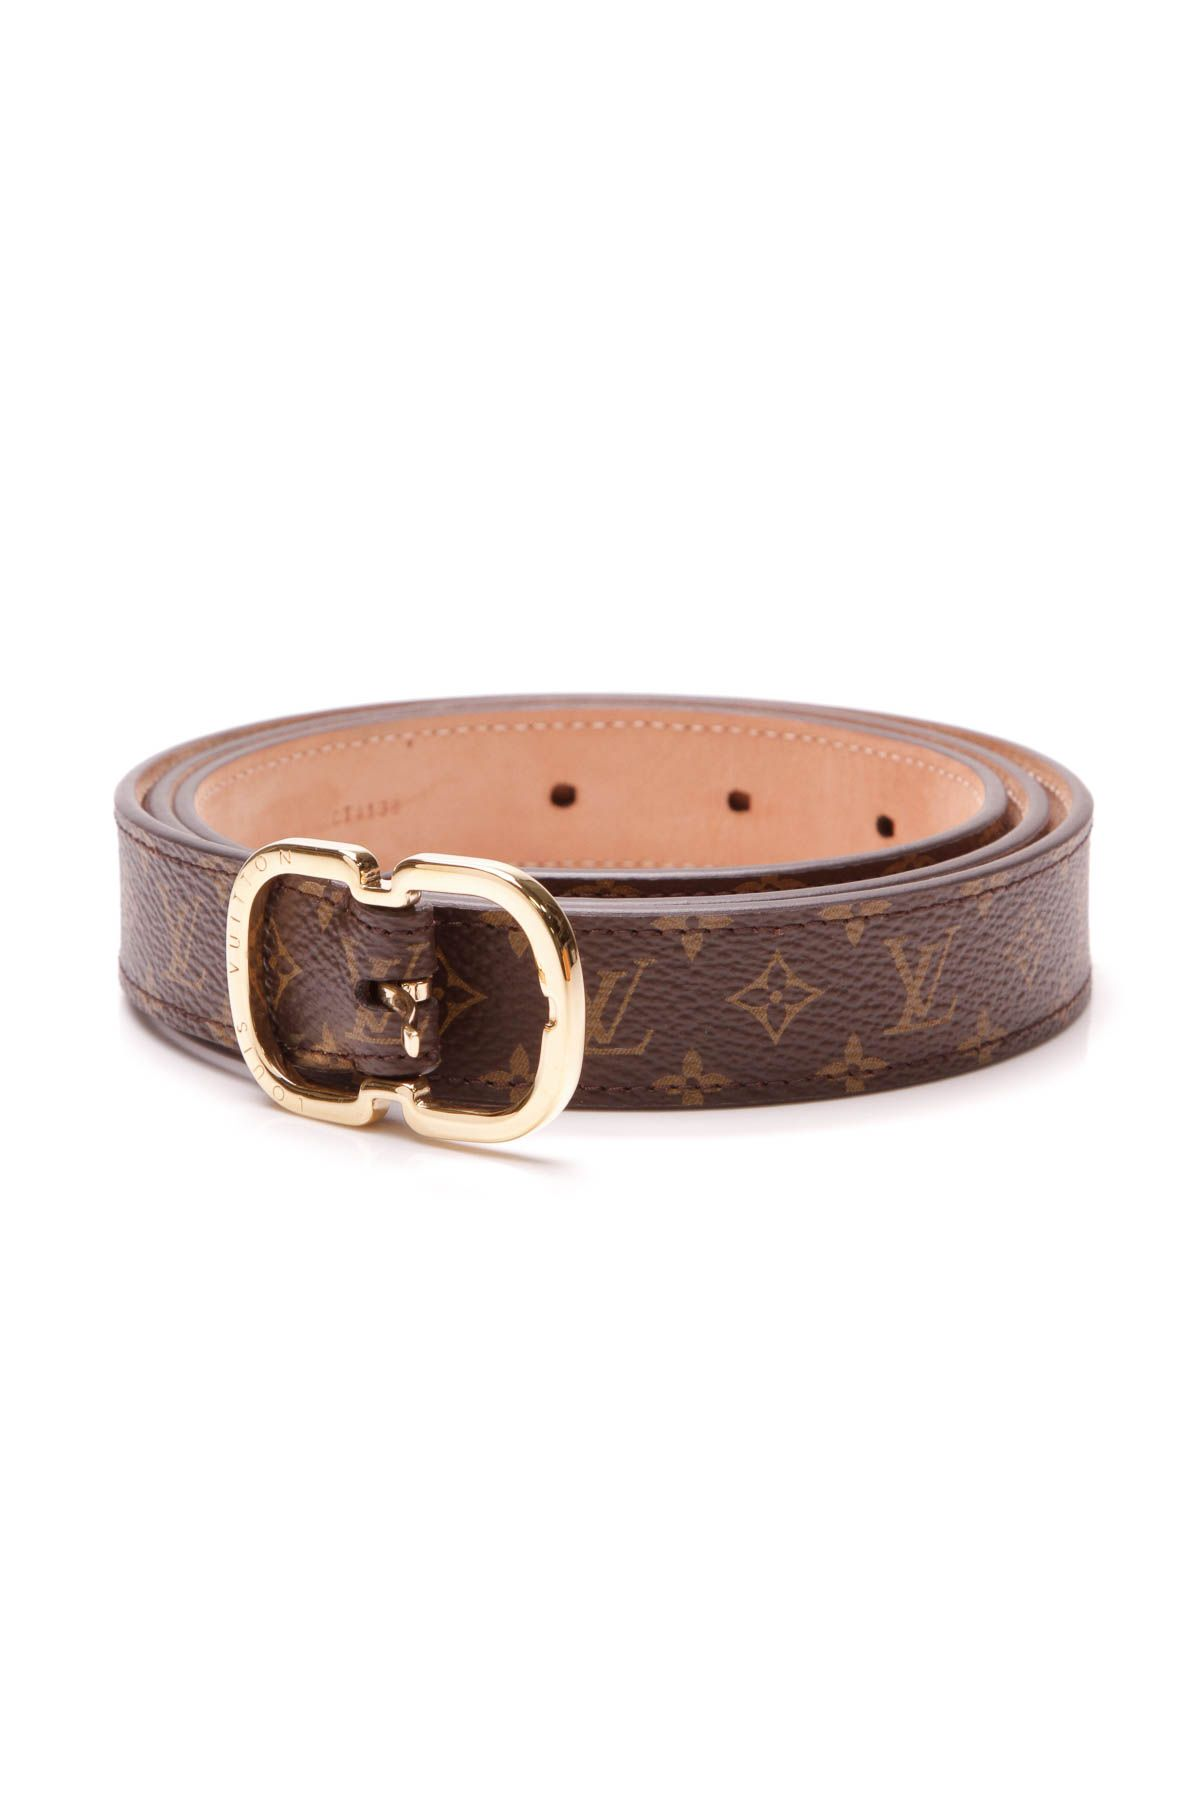 Pin by Mrs ADEEL on for him in 2020 Louis vuitton belt